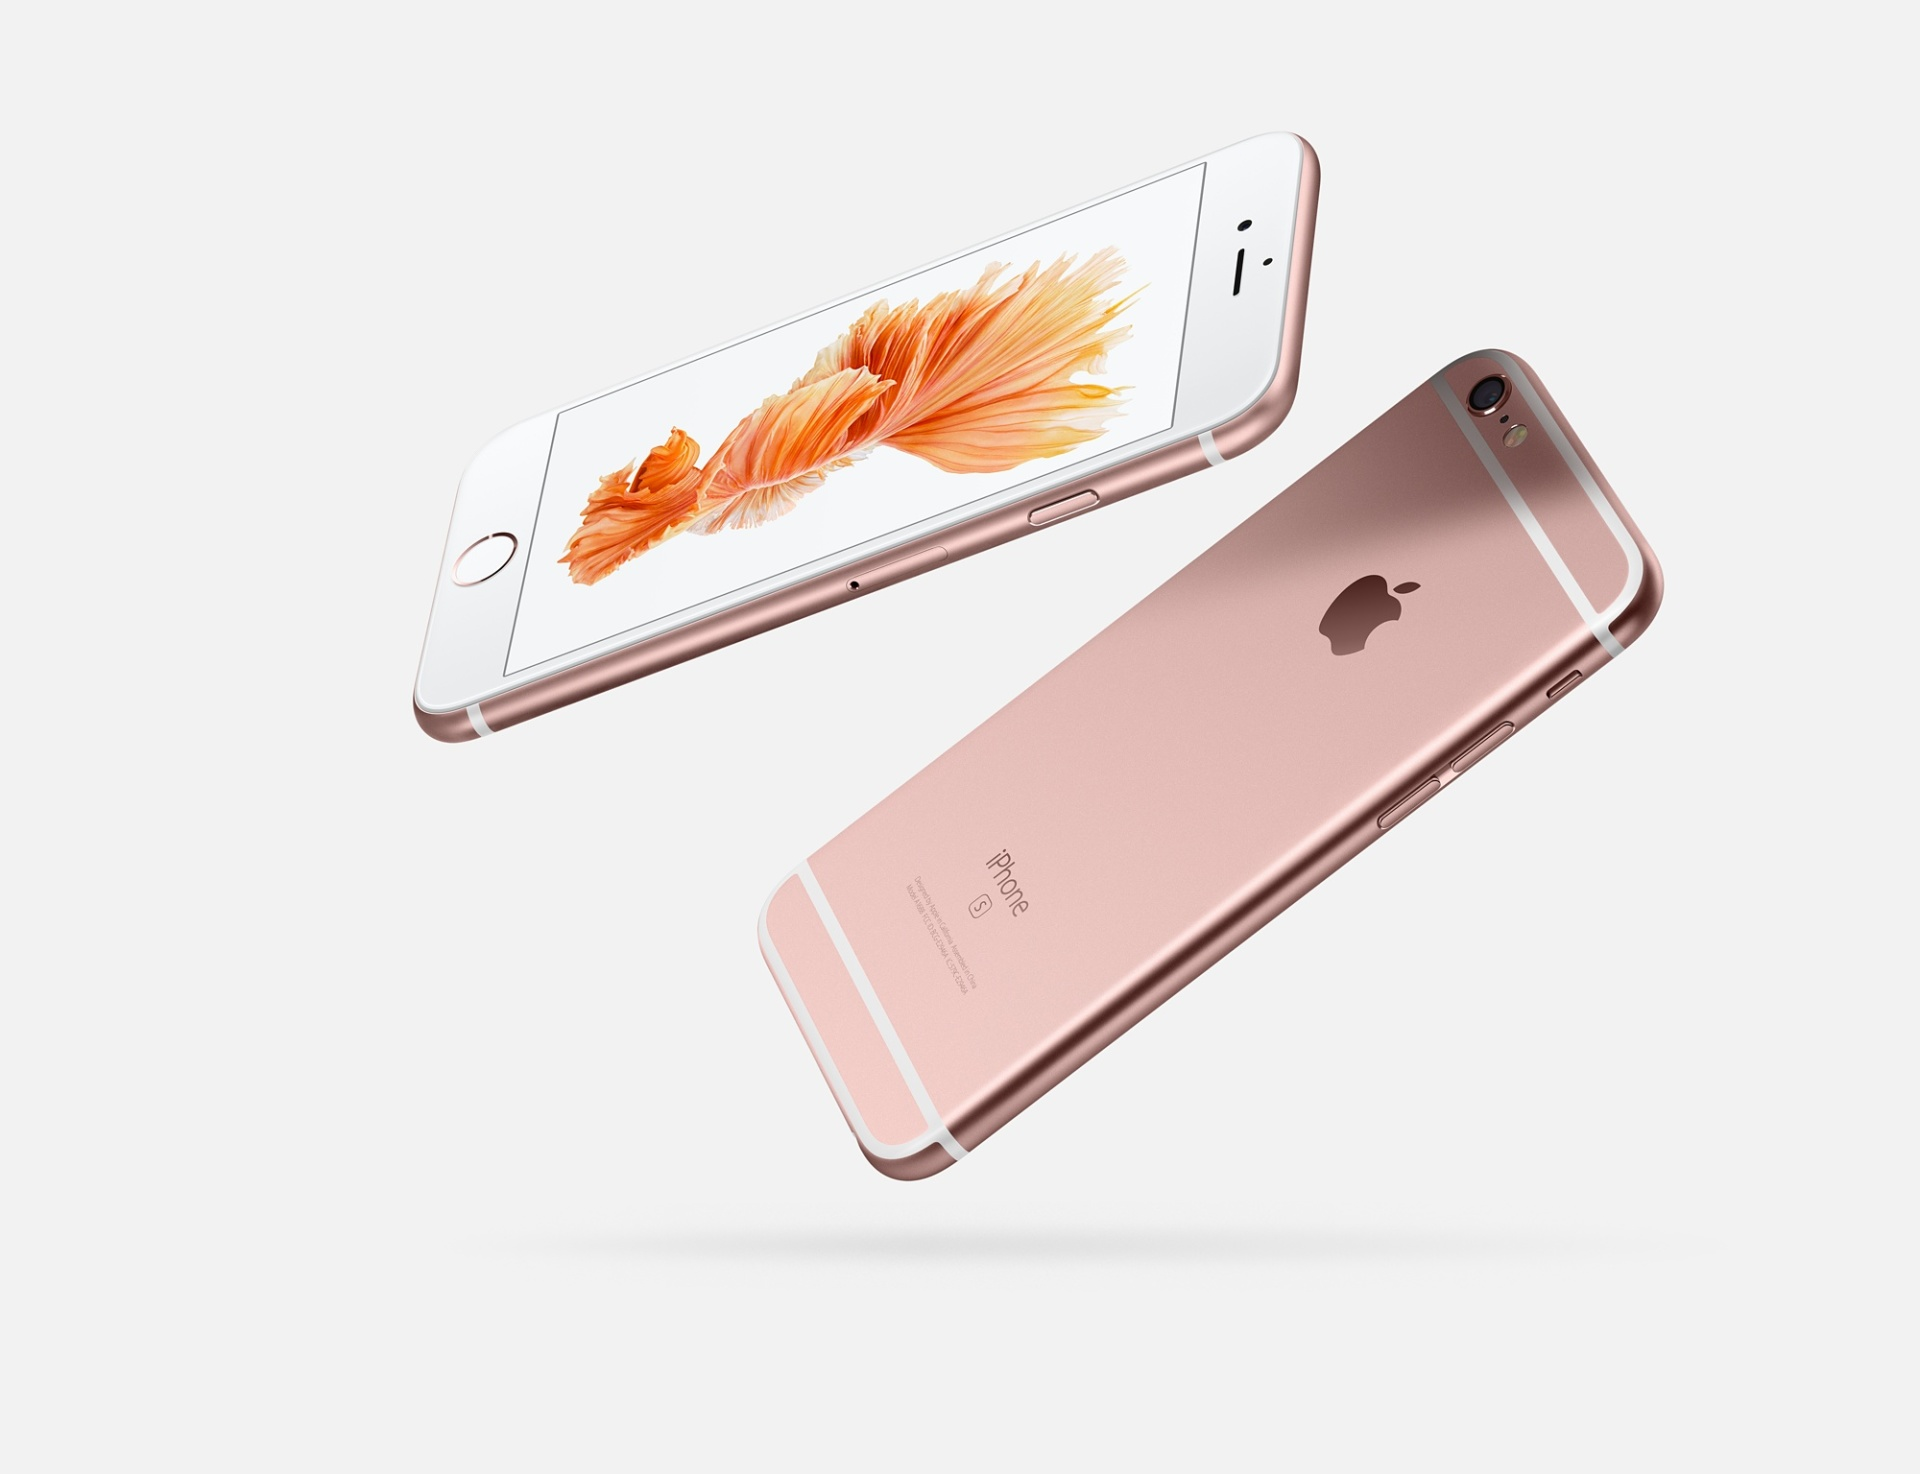 Android users prefer the iPhone 6s